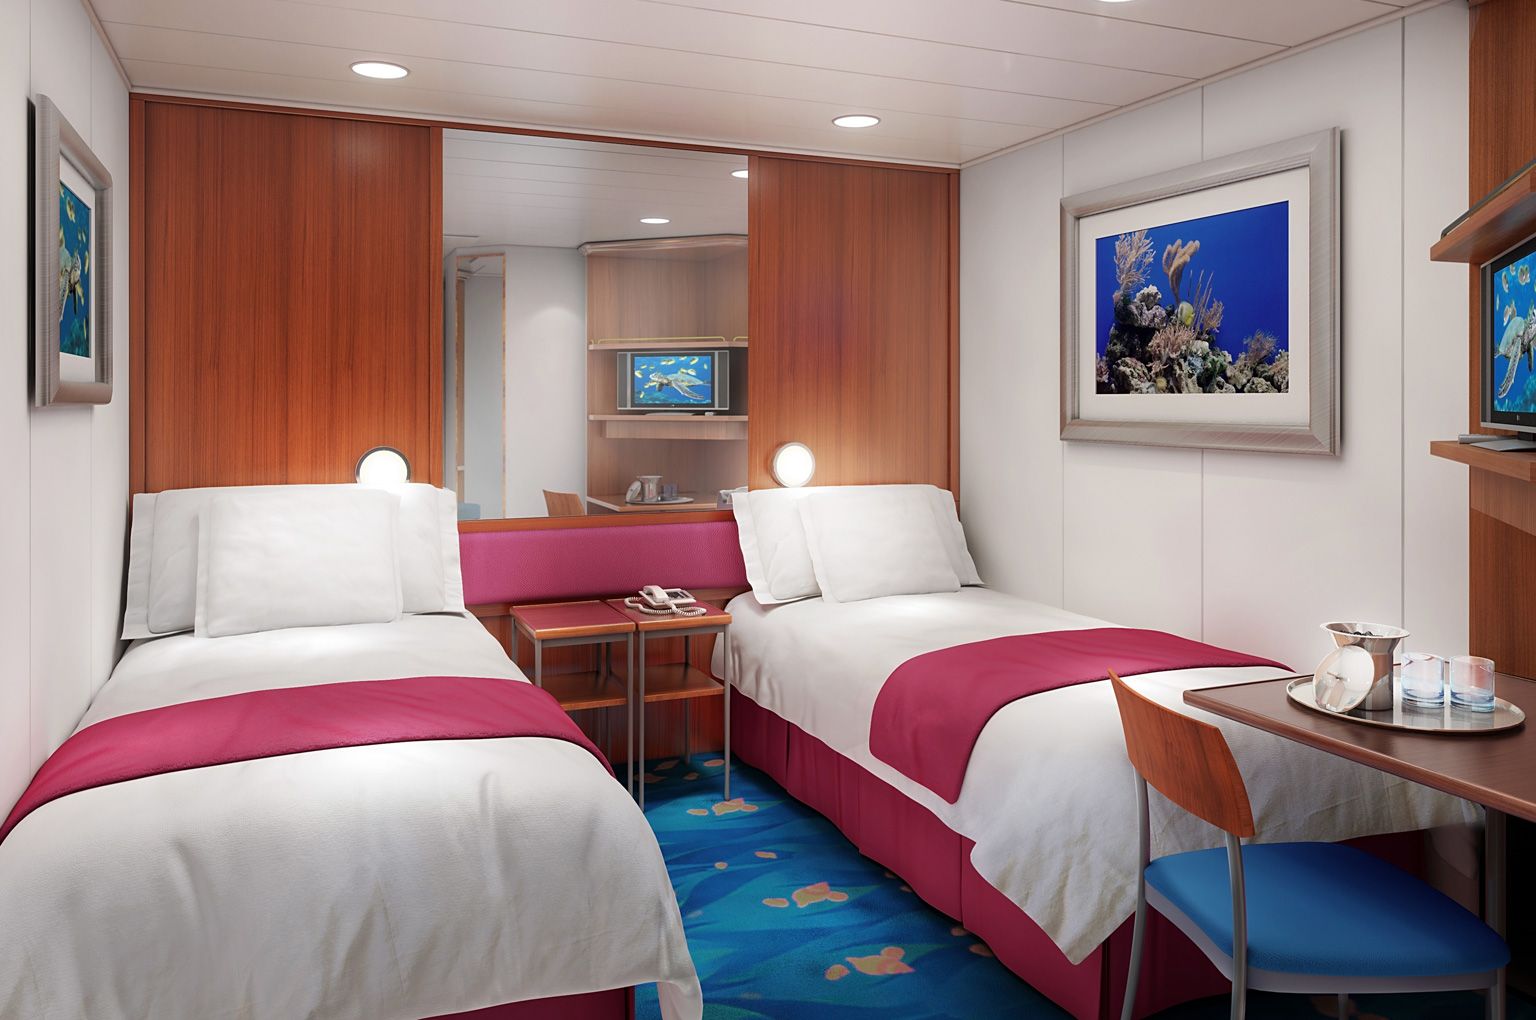 Inside Stateroom* - Includes all meals, open bar, entertainment, taxes and port fees. Pricing is PER PERSON, based on DOUBLE OCCUPANCY (Single Room Option are available).  (Single Room Option are available). The beds could be either two twins or king. If you would like more than 2 people in a room, contact us for a custom room quote.